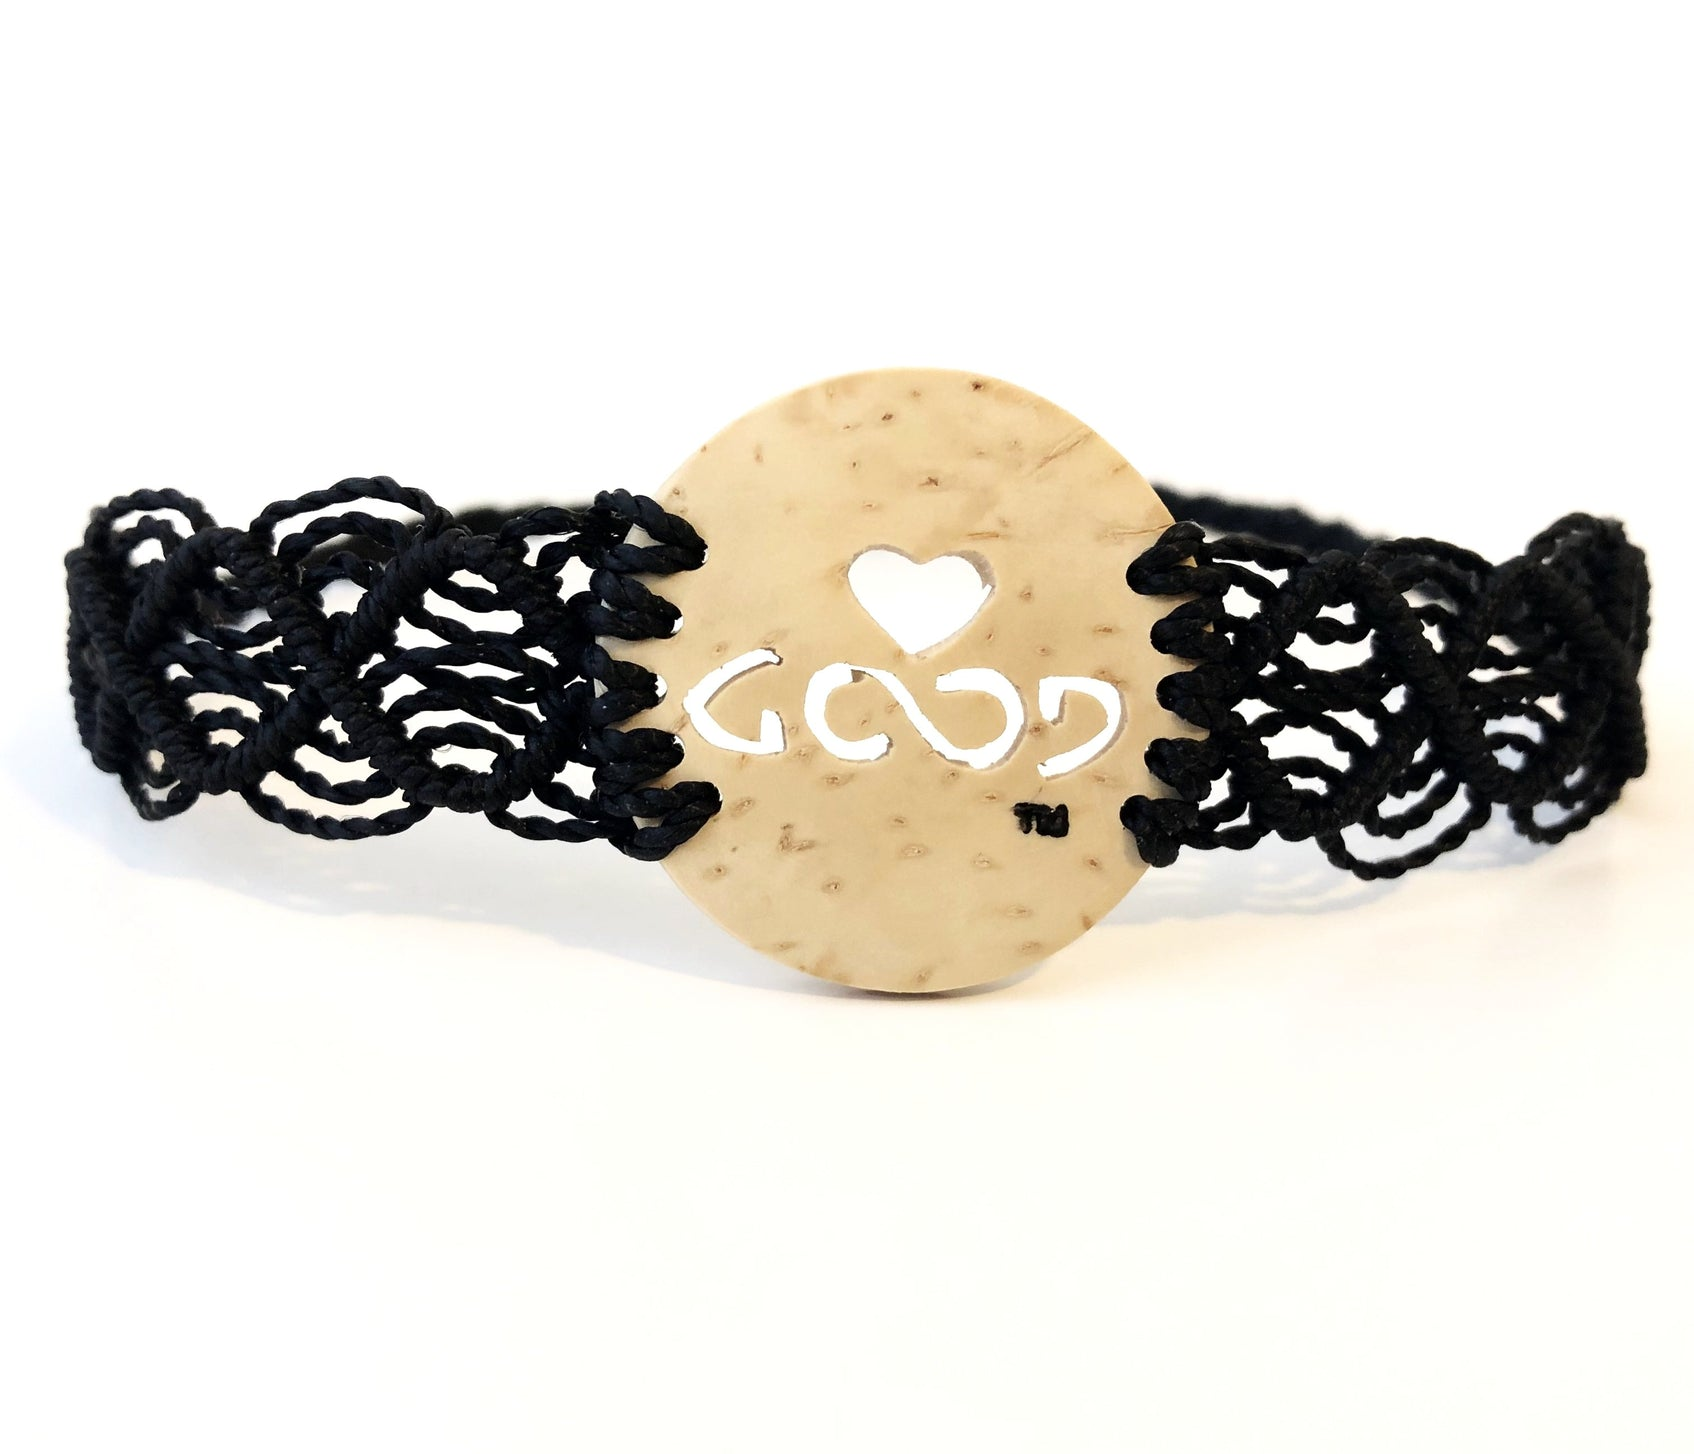 Love Good Always Coconut Shell Bracelet Mayan Lace Black Band